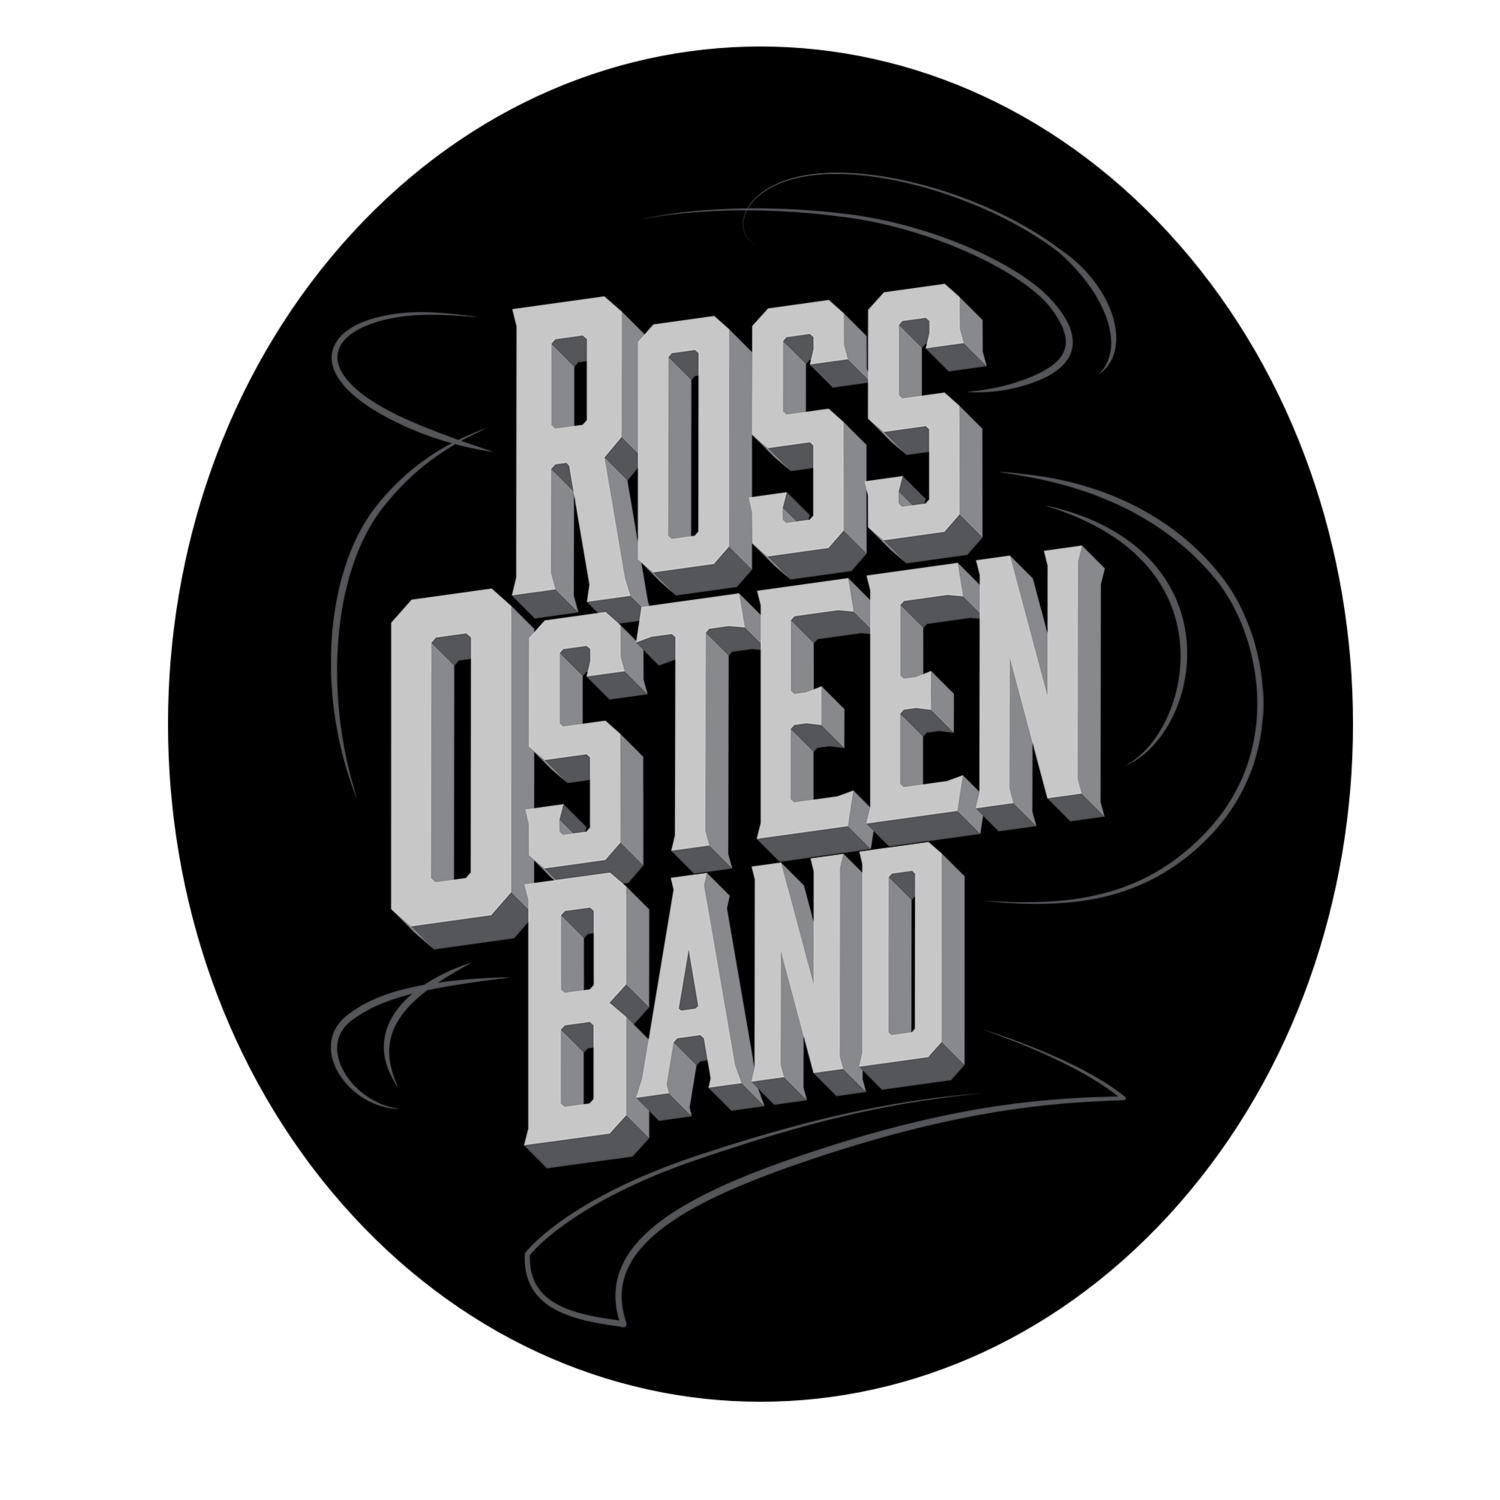 Ross Osteen Band